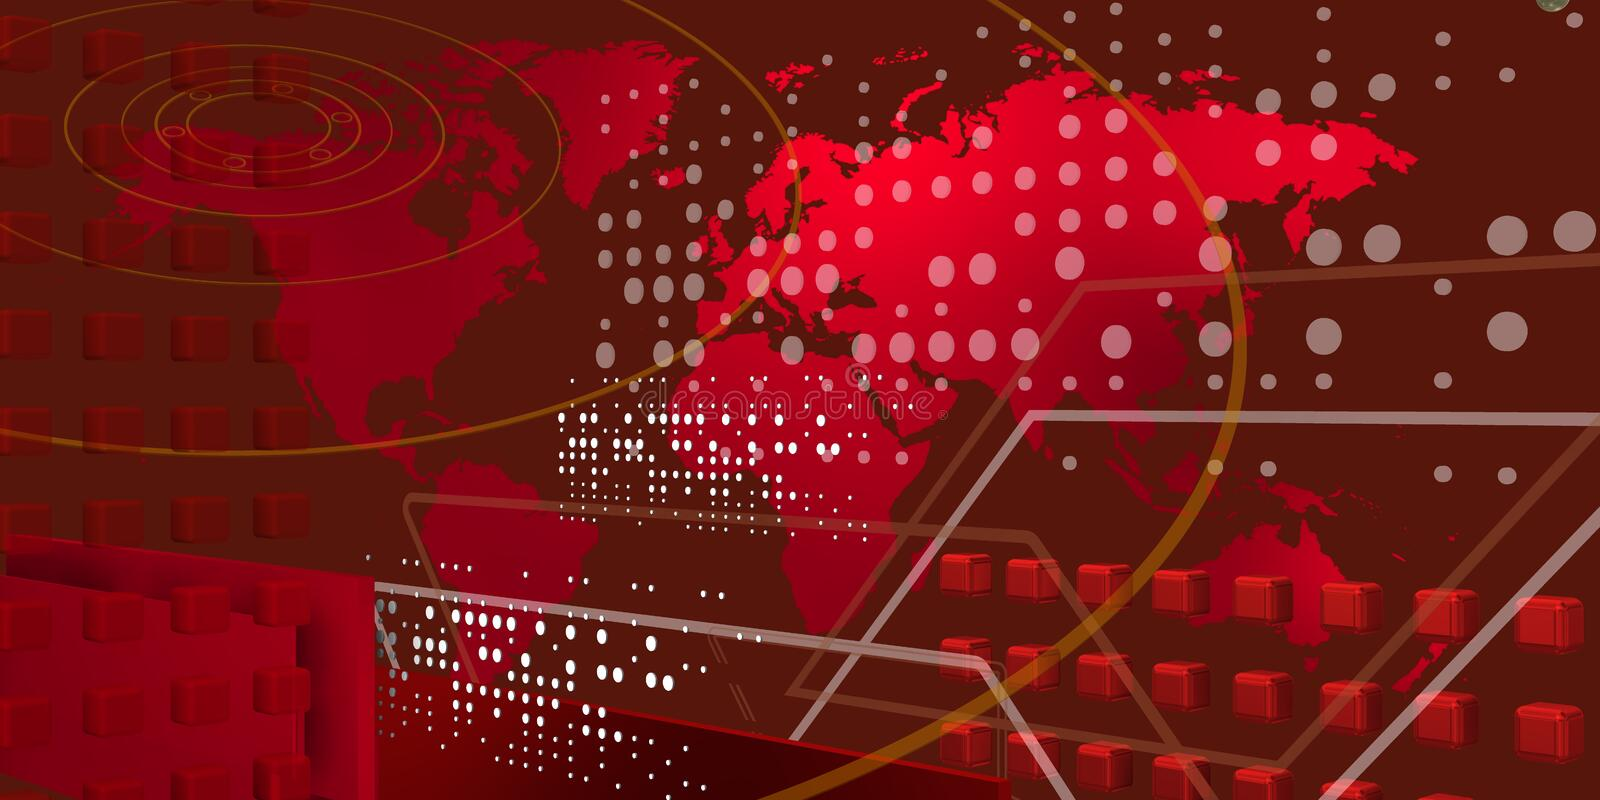 Cool teccnological world over red stock image